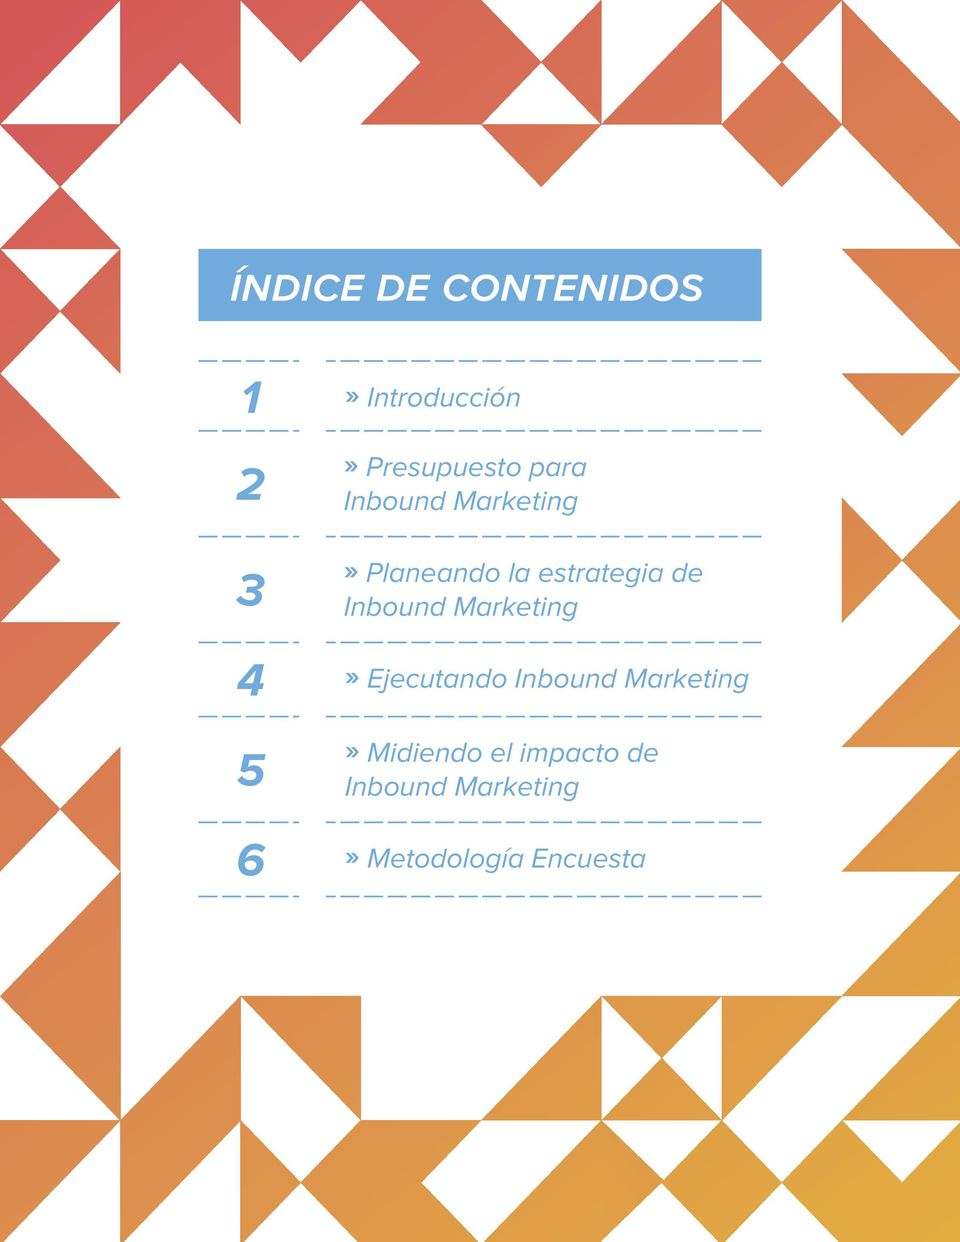 estrategia de Inbound Marketing» Ejecutando Inbound